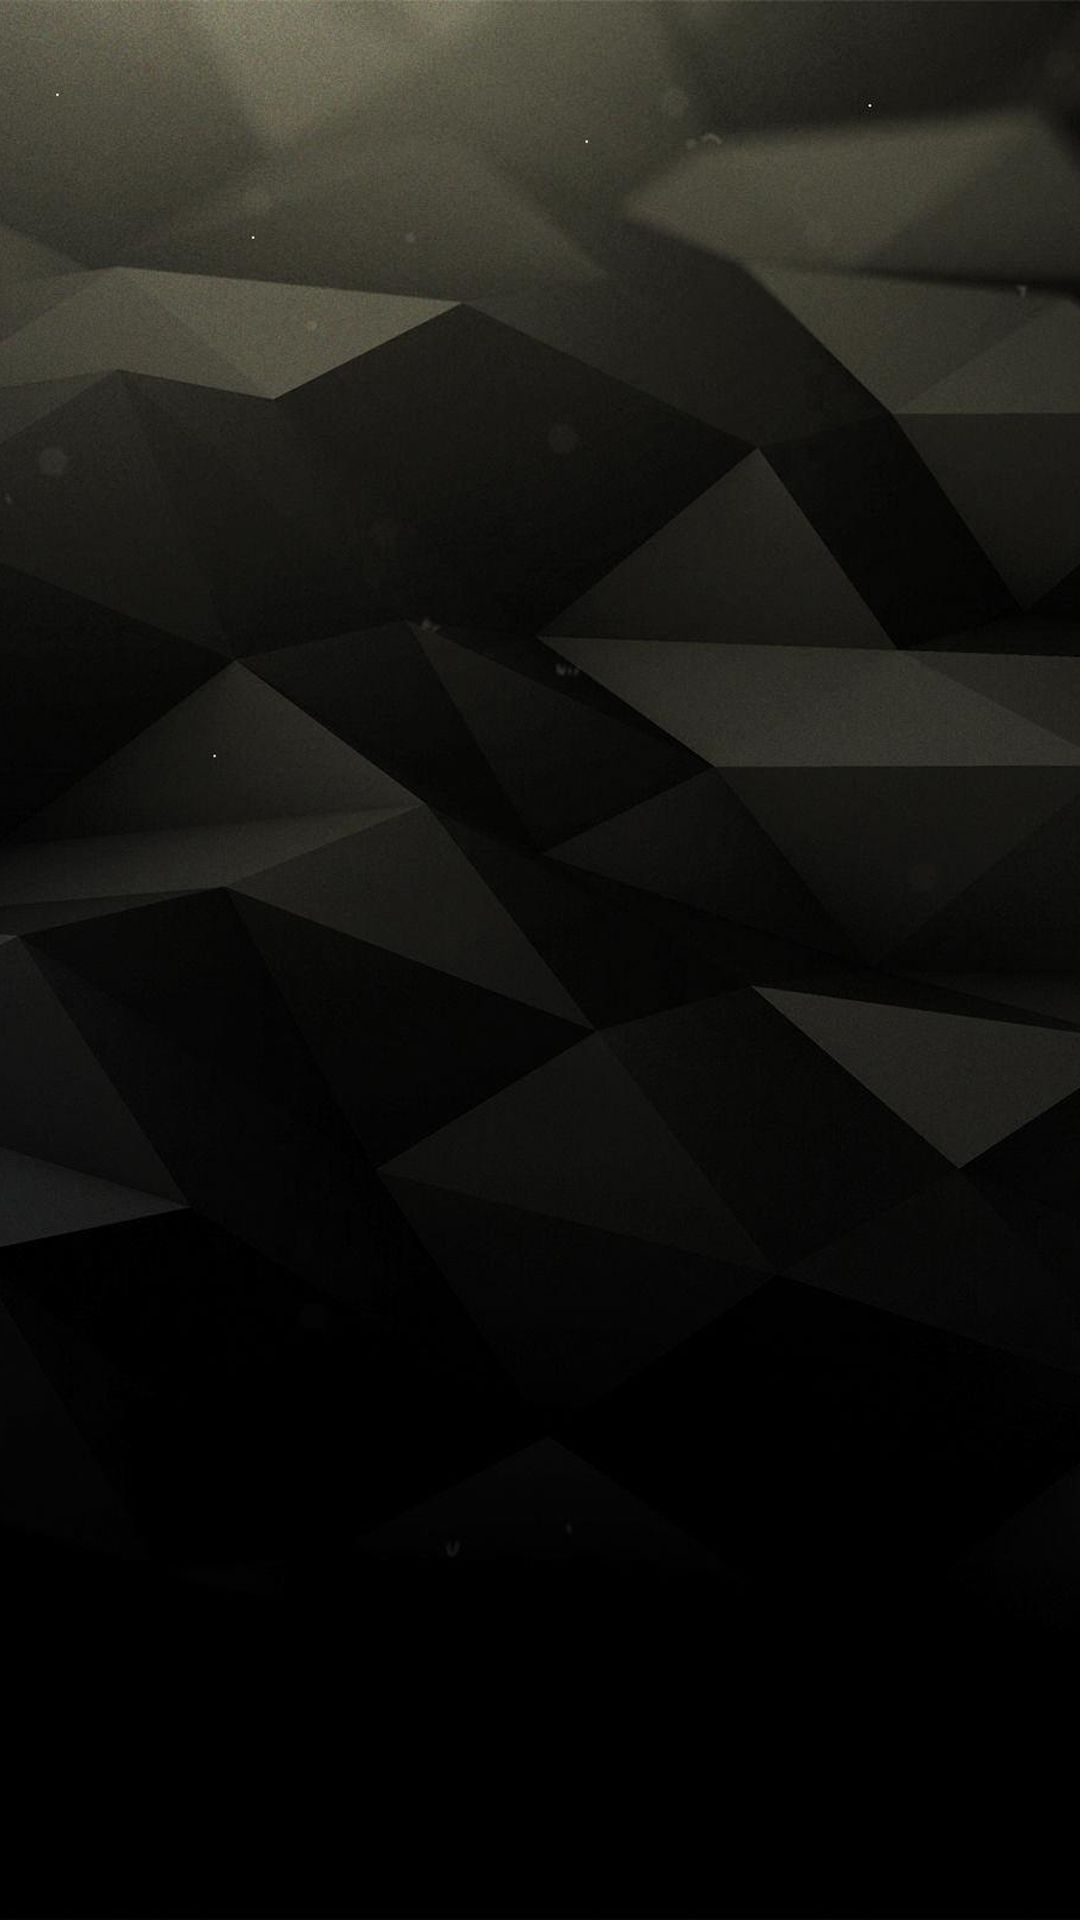 Black Low Poly Google Search Abstract Iphone Wallpaper Iphone Wallpaper Photography Digital Texture